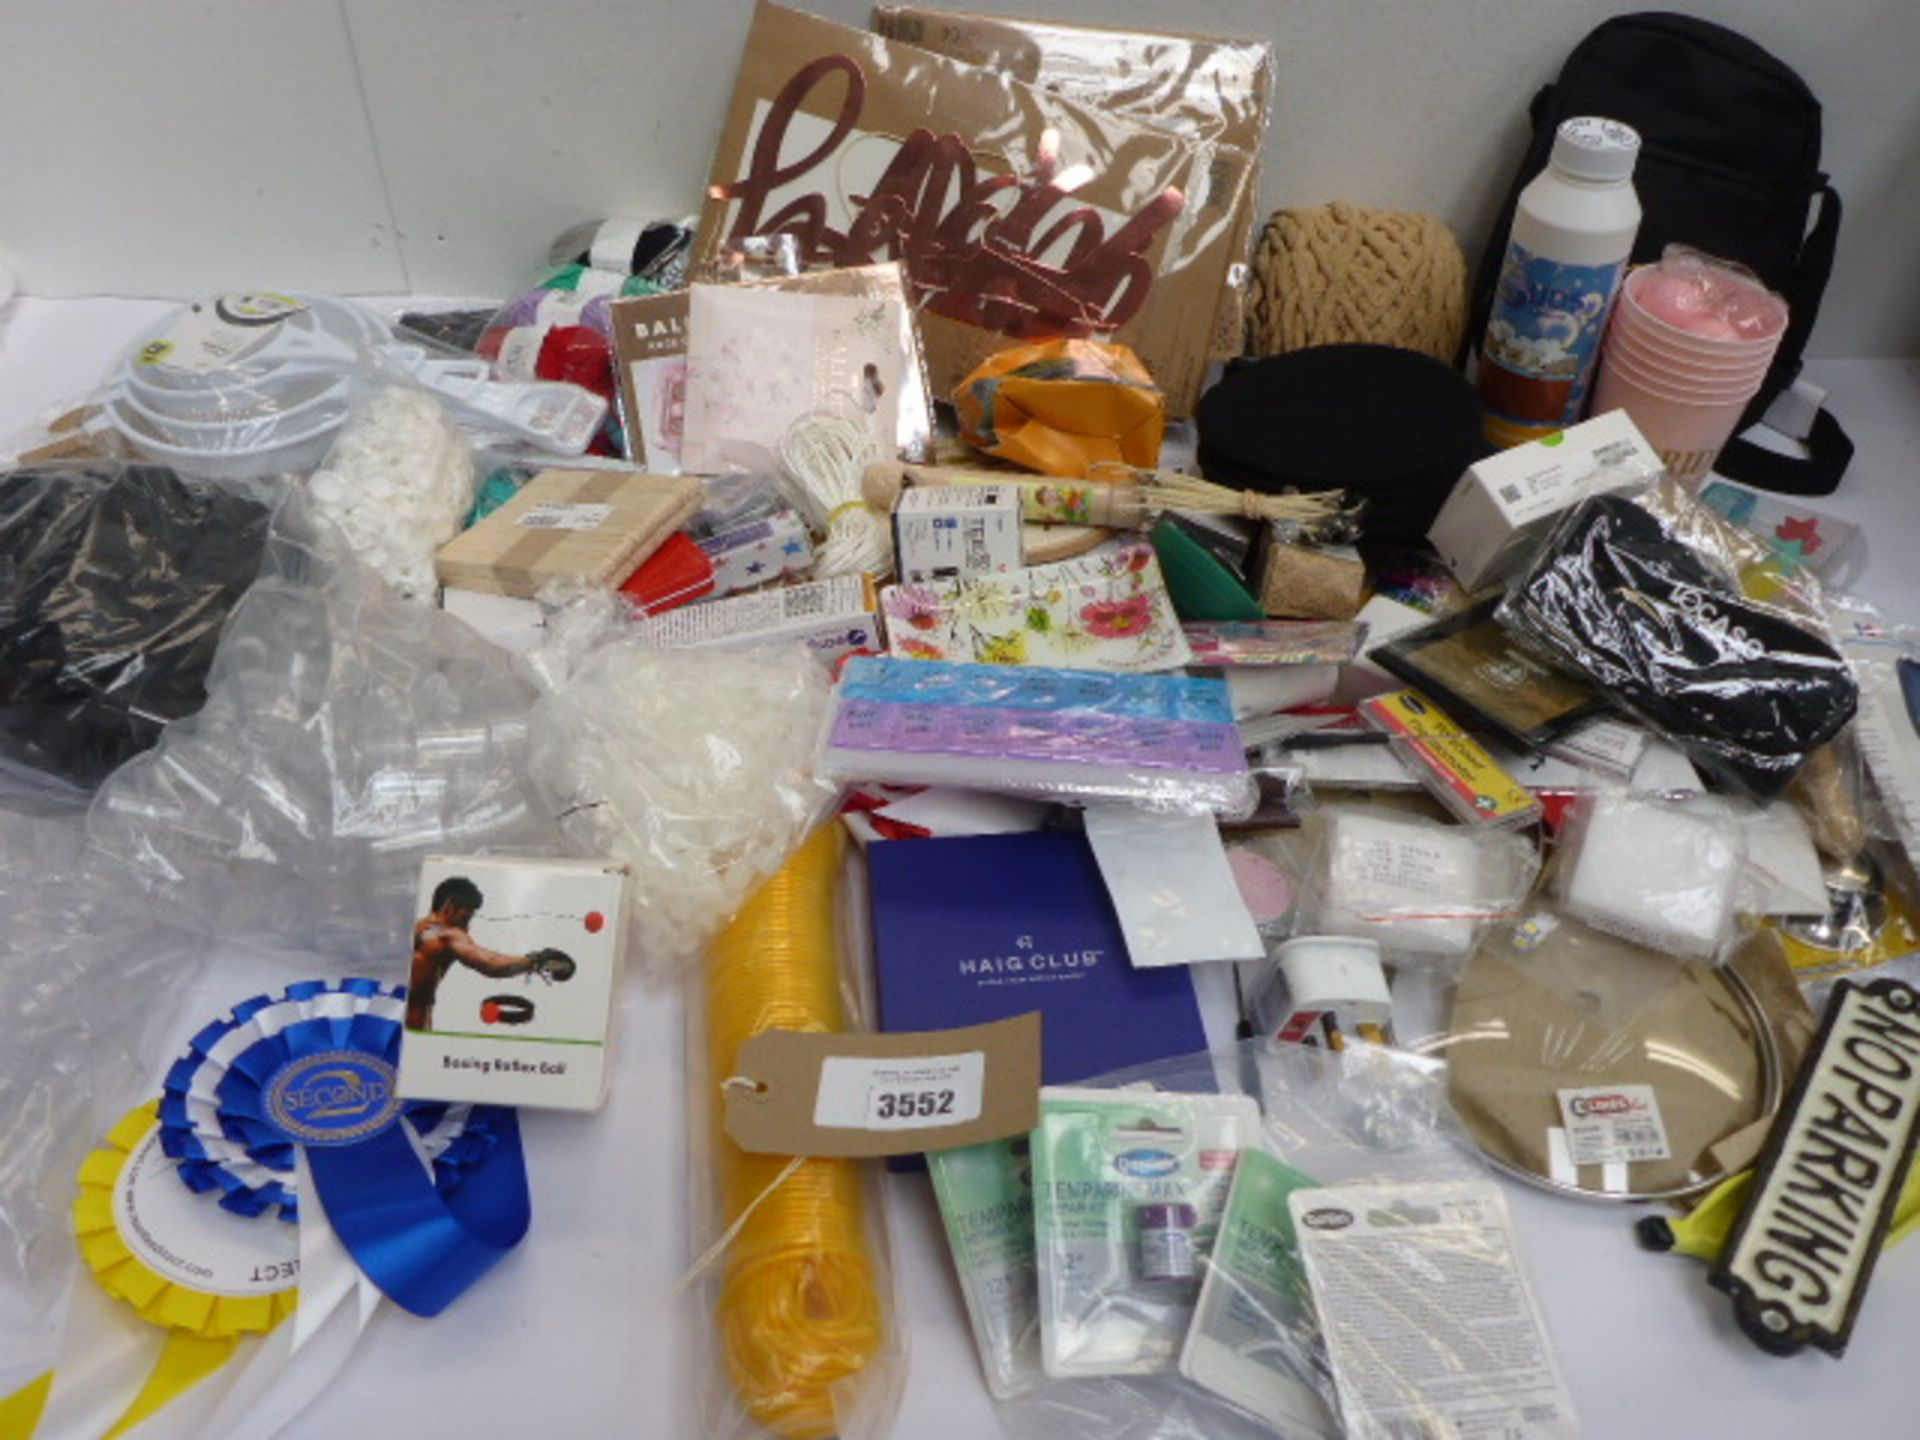 Lot 3552 - Large bag of household sundries including party, dental, craft and stationery products, mini plastic